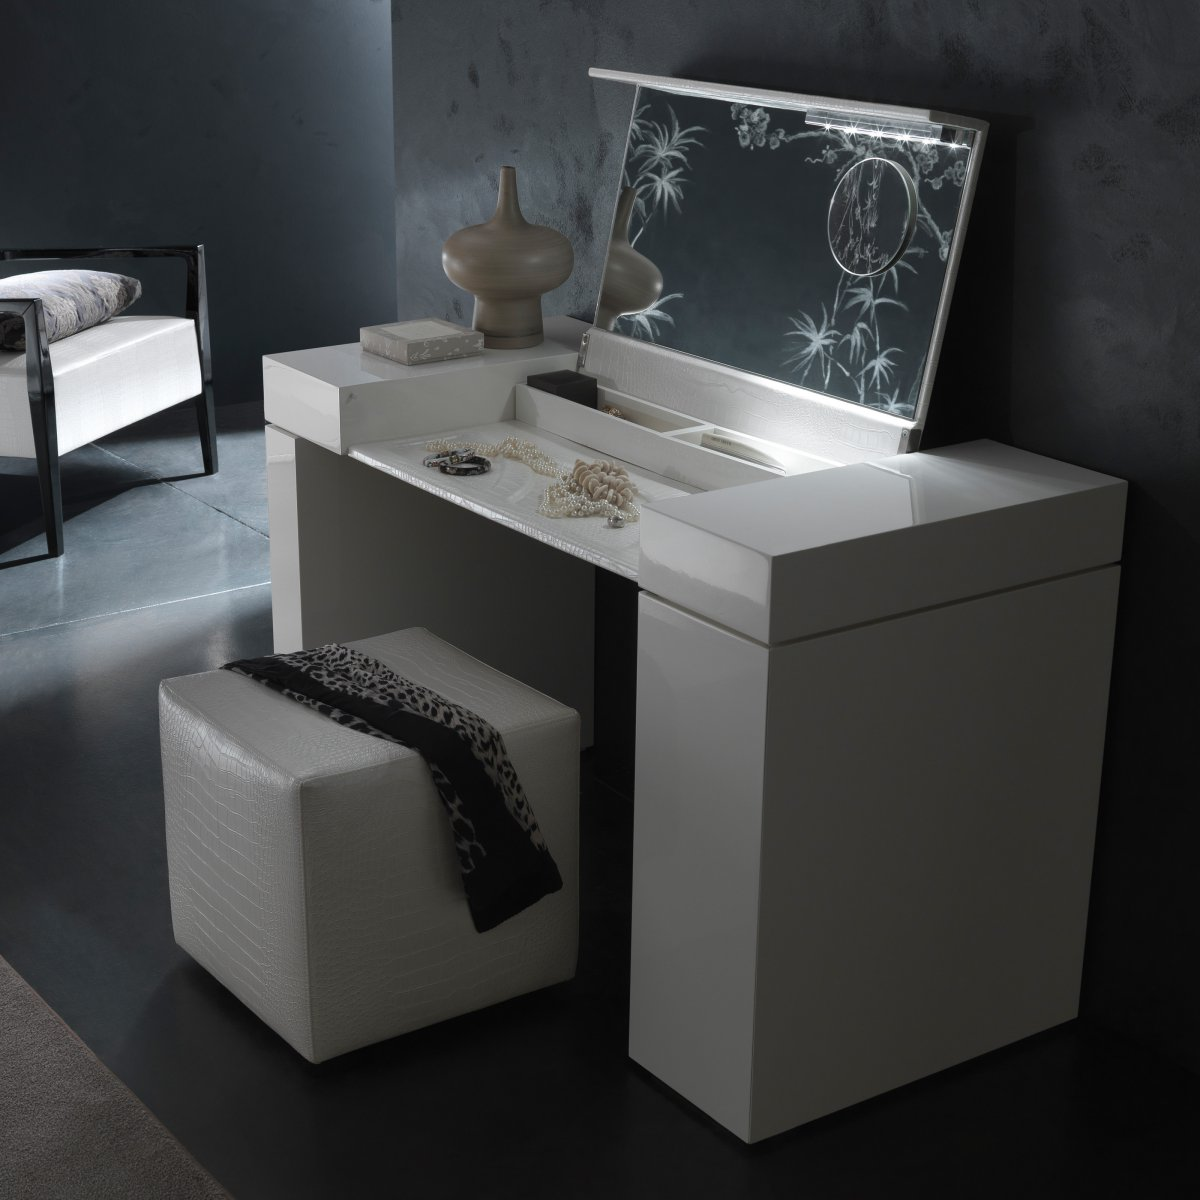 Fascinating Hayworth Vanity for Bedroom Furniture Ideas: Fabulous Hayworth Vanity Mirrored Vanity And Ikea Vanity Also Ikea Rug Hayworth Rug Ideas